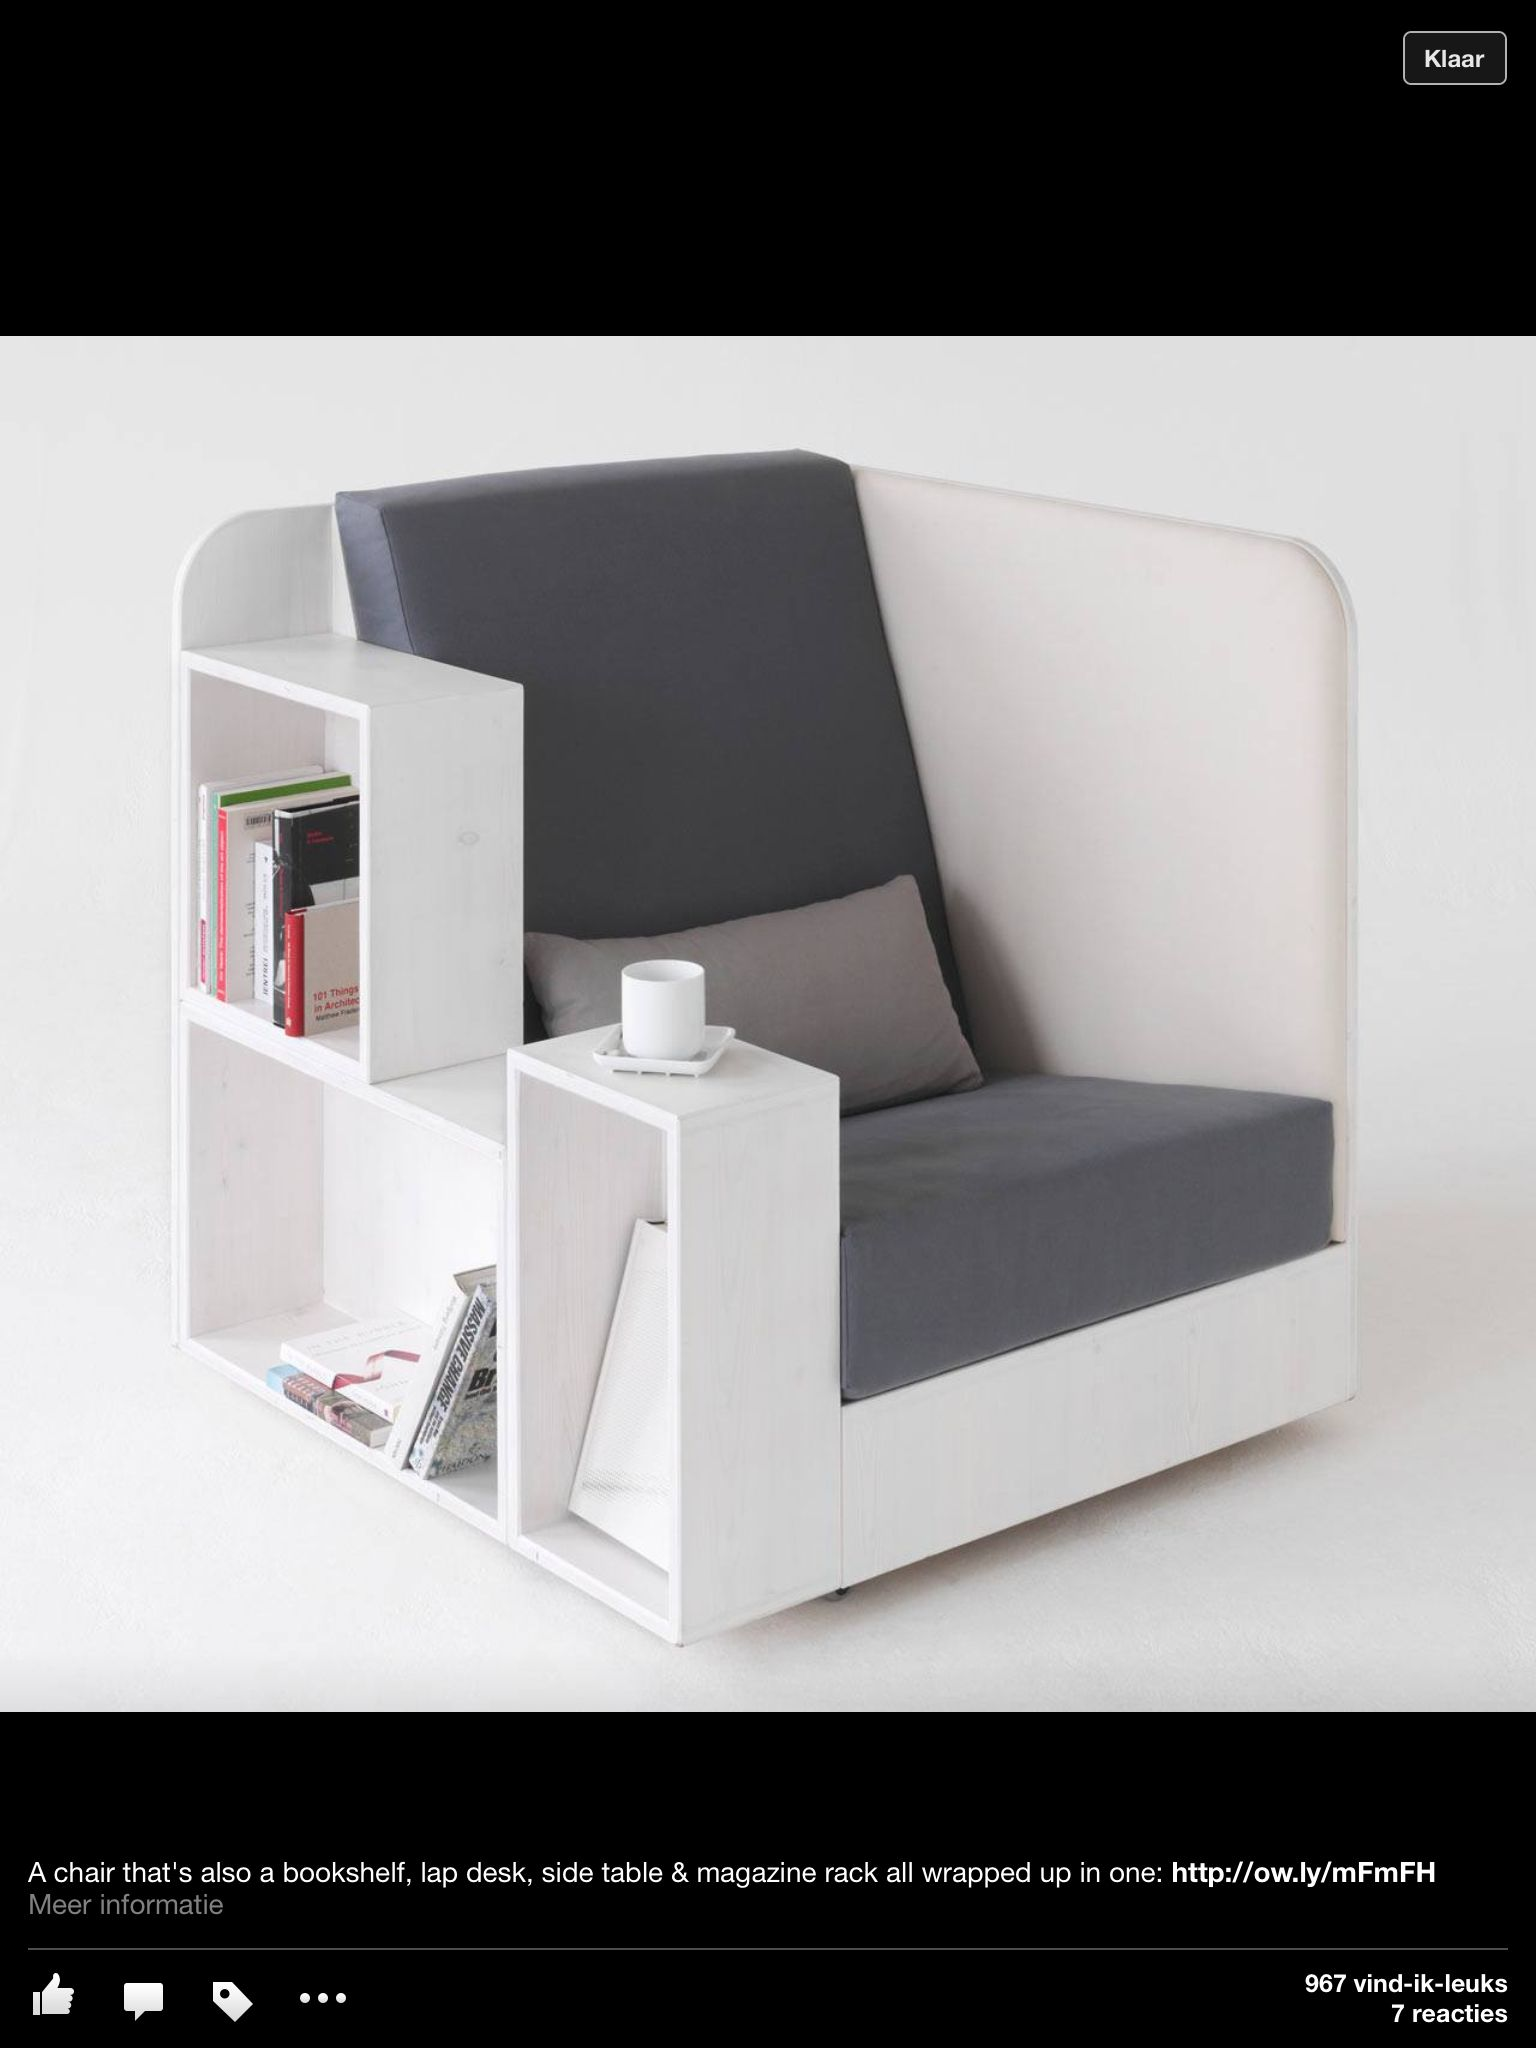 A Chair That Is Also Bookshelf Lap Desk Sidetable And Magazine Rack